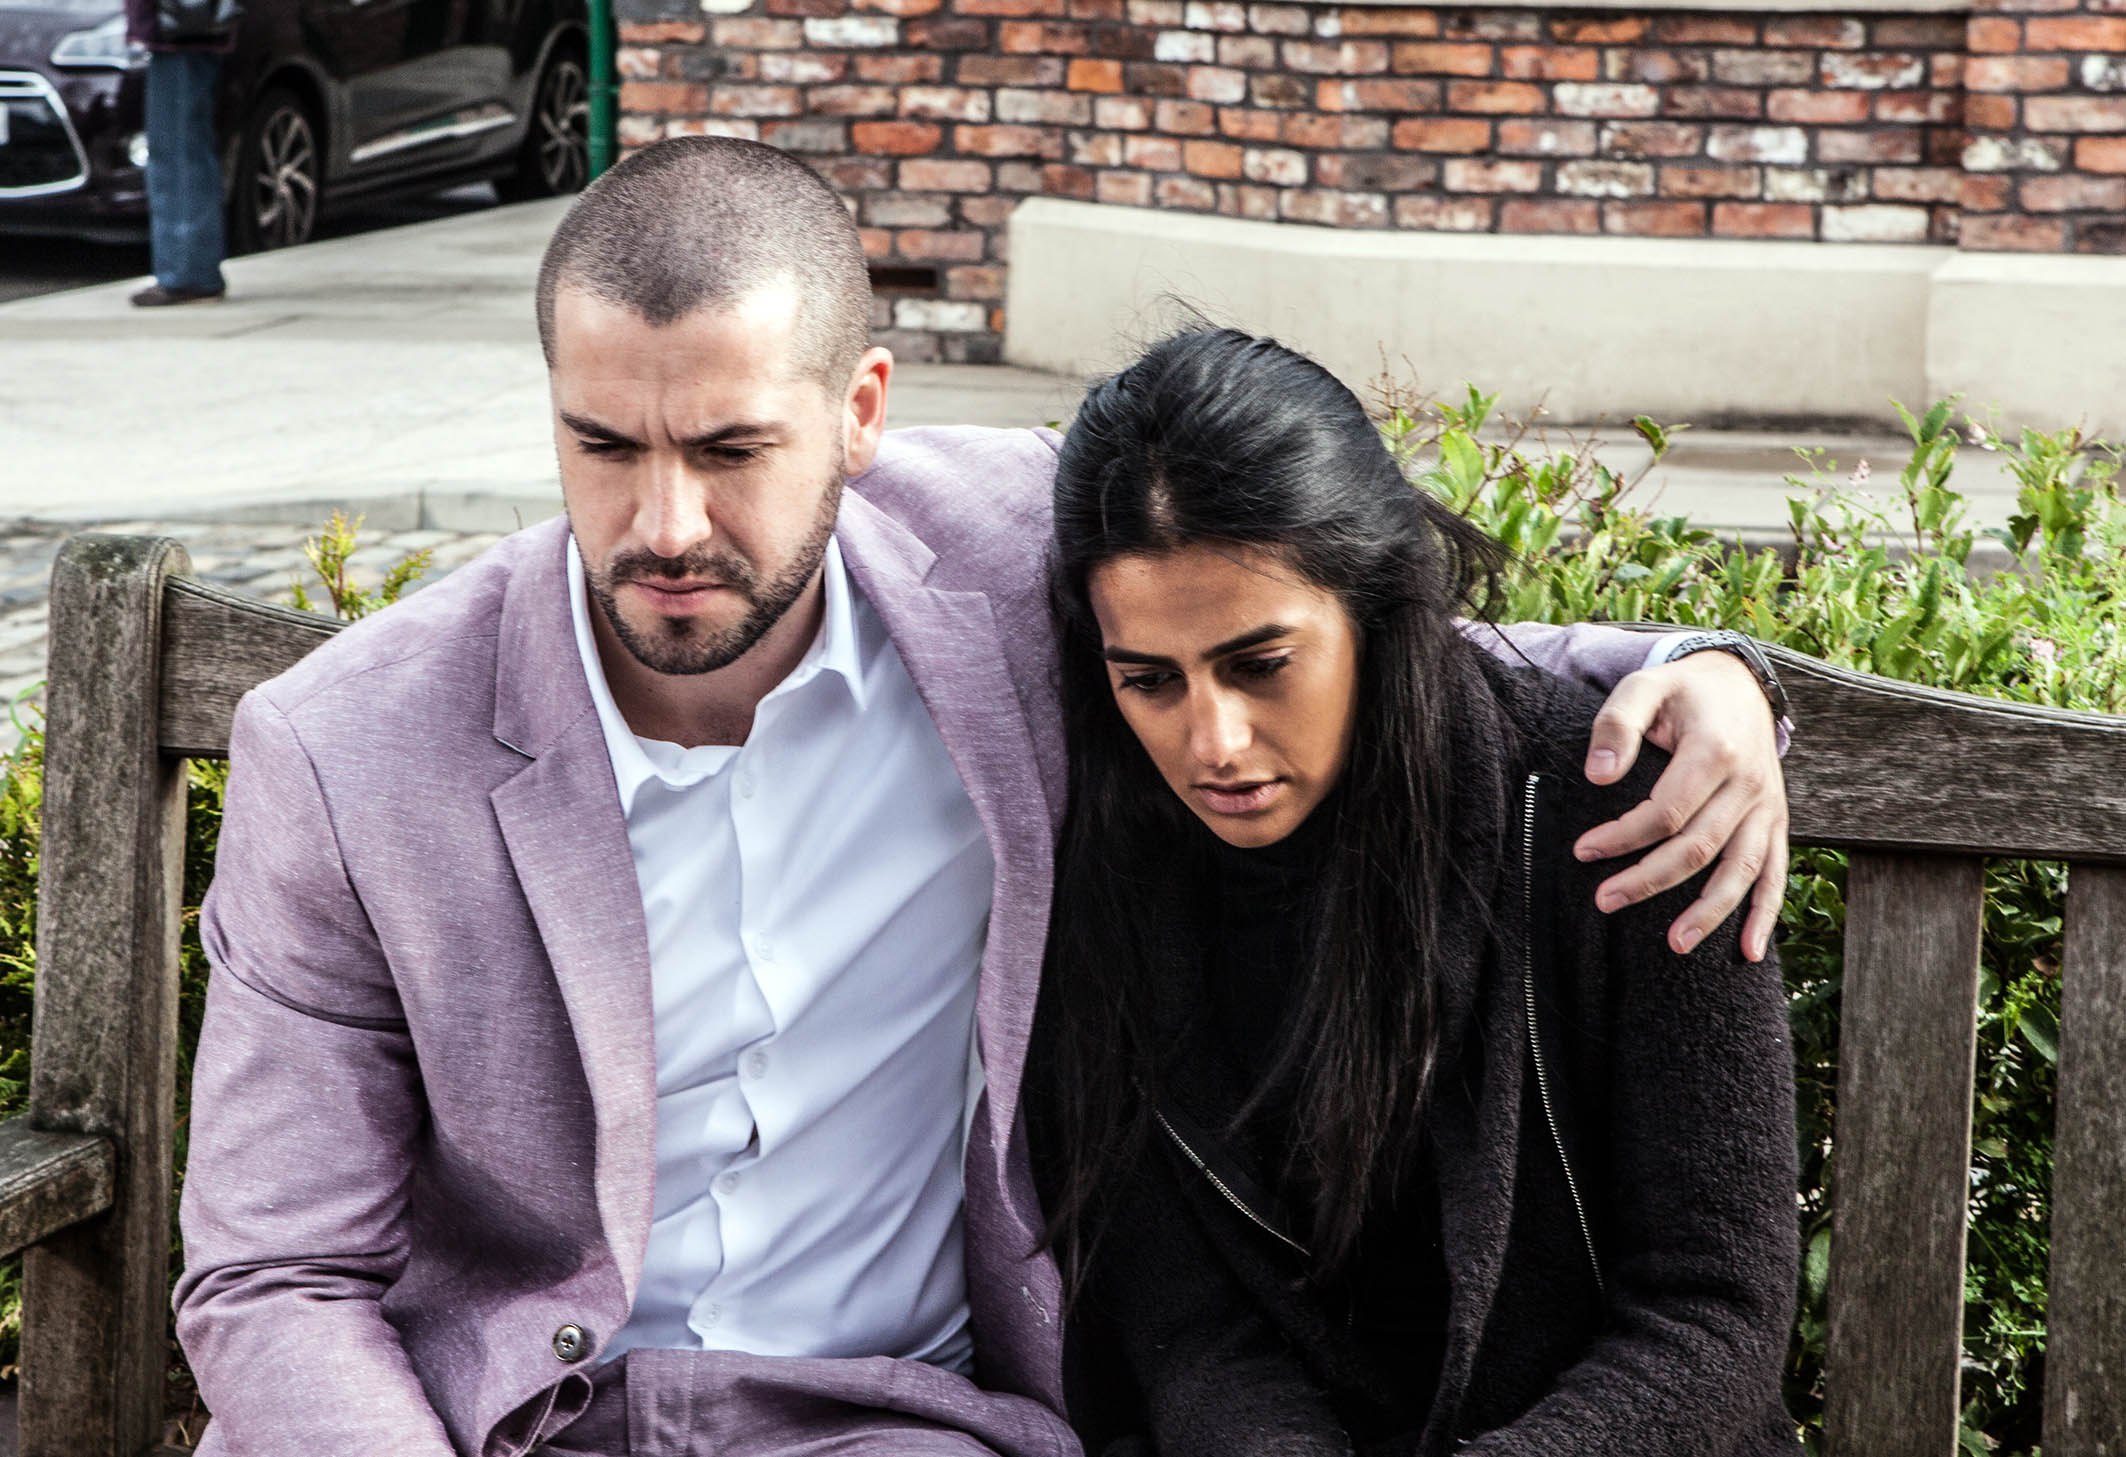 FROM ITV STRICT EMBARGO - No Use Before Tuesday 20 October 2015 Coronation Street - Ep 8762 Friday 30 October 2015 Lashing out Gary Windass [MIKEY WINDASS] accuses Aidan Connor [SHAYNE WARD] of sleeping with Alya Nazir [SAIR KHAN], will Jason Grimshaw [RYAN THOMAS] step up and admit it was him? Picture contact: david.crook@itv.com on 0161 952 6214 Photographer - Joseph Scanlon This photograph is (C) ITV Plc and can only be reproduced for editorial purposes directly in connection with the programme or event mentioned above, or ITV plc. Once made available by ITV plc Picture Desk, this photograph can be reproduced once only up until the transmission [TX] date and no reproduction fee will be charged. Any subsequent usage may incur a fee. This photograph must not be manipulated [excluding basic cropping] in a manner which alters the visual appearance of the person photographed deemed detrimental or inappropriate by ITV plc Picture Desk. This photograph must not be syndicated to any other company, publication or website, or permanently archived, without the express written permission of ITV Plc Picture Desk. Full Terms and conditions are available on the website www.itvpictures.com